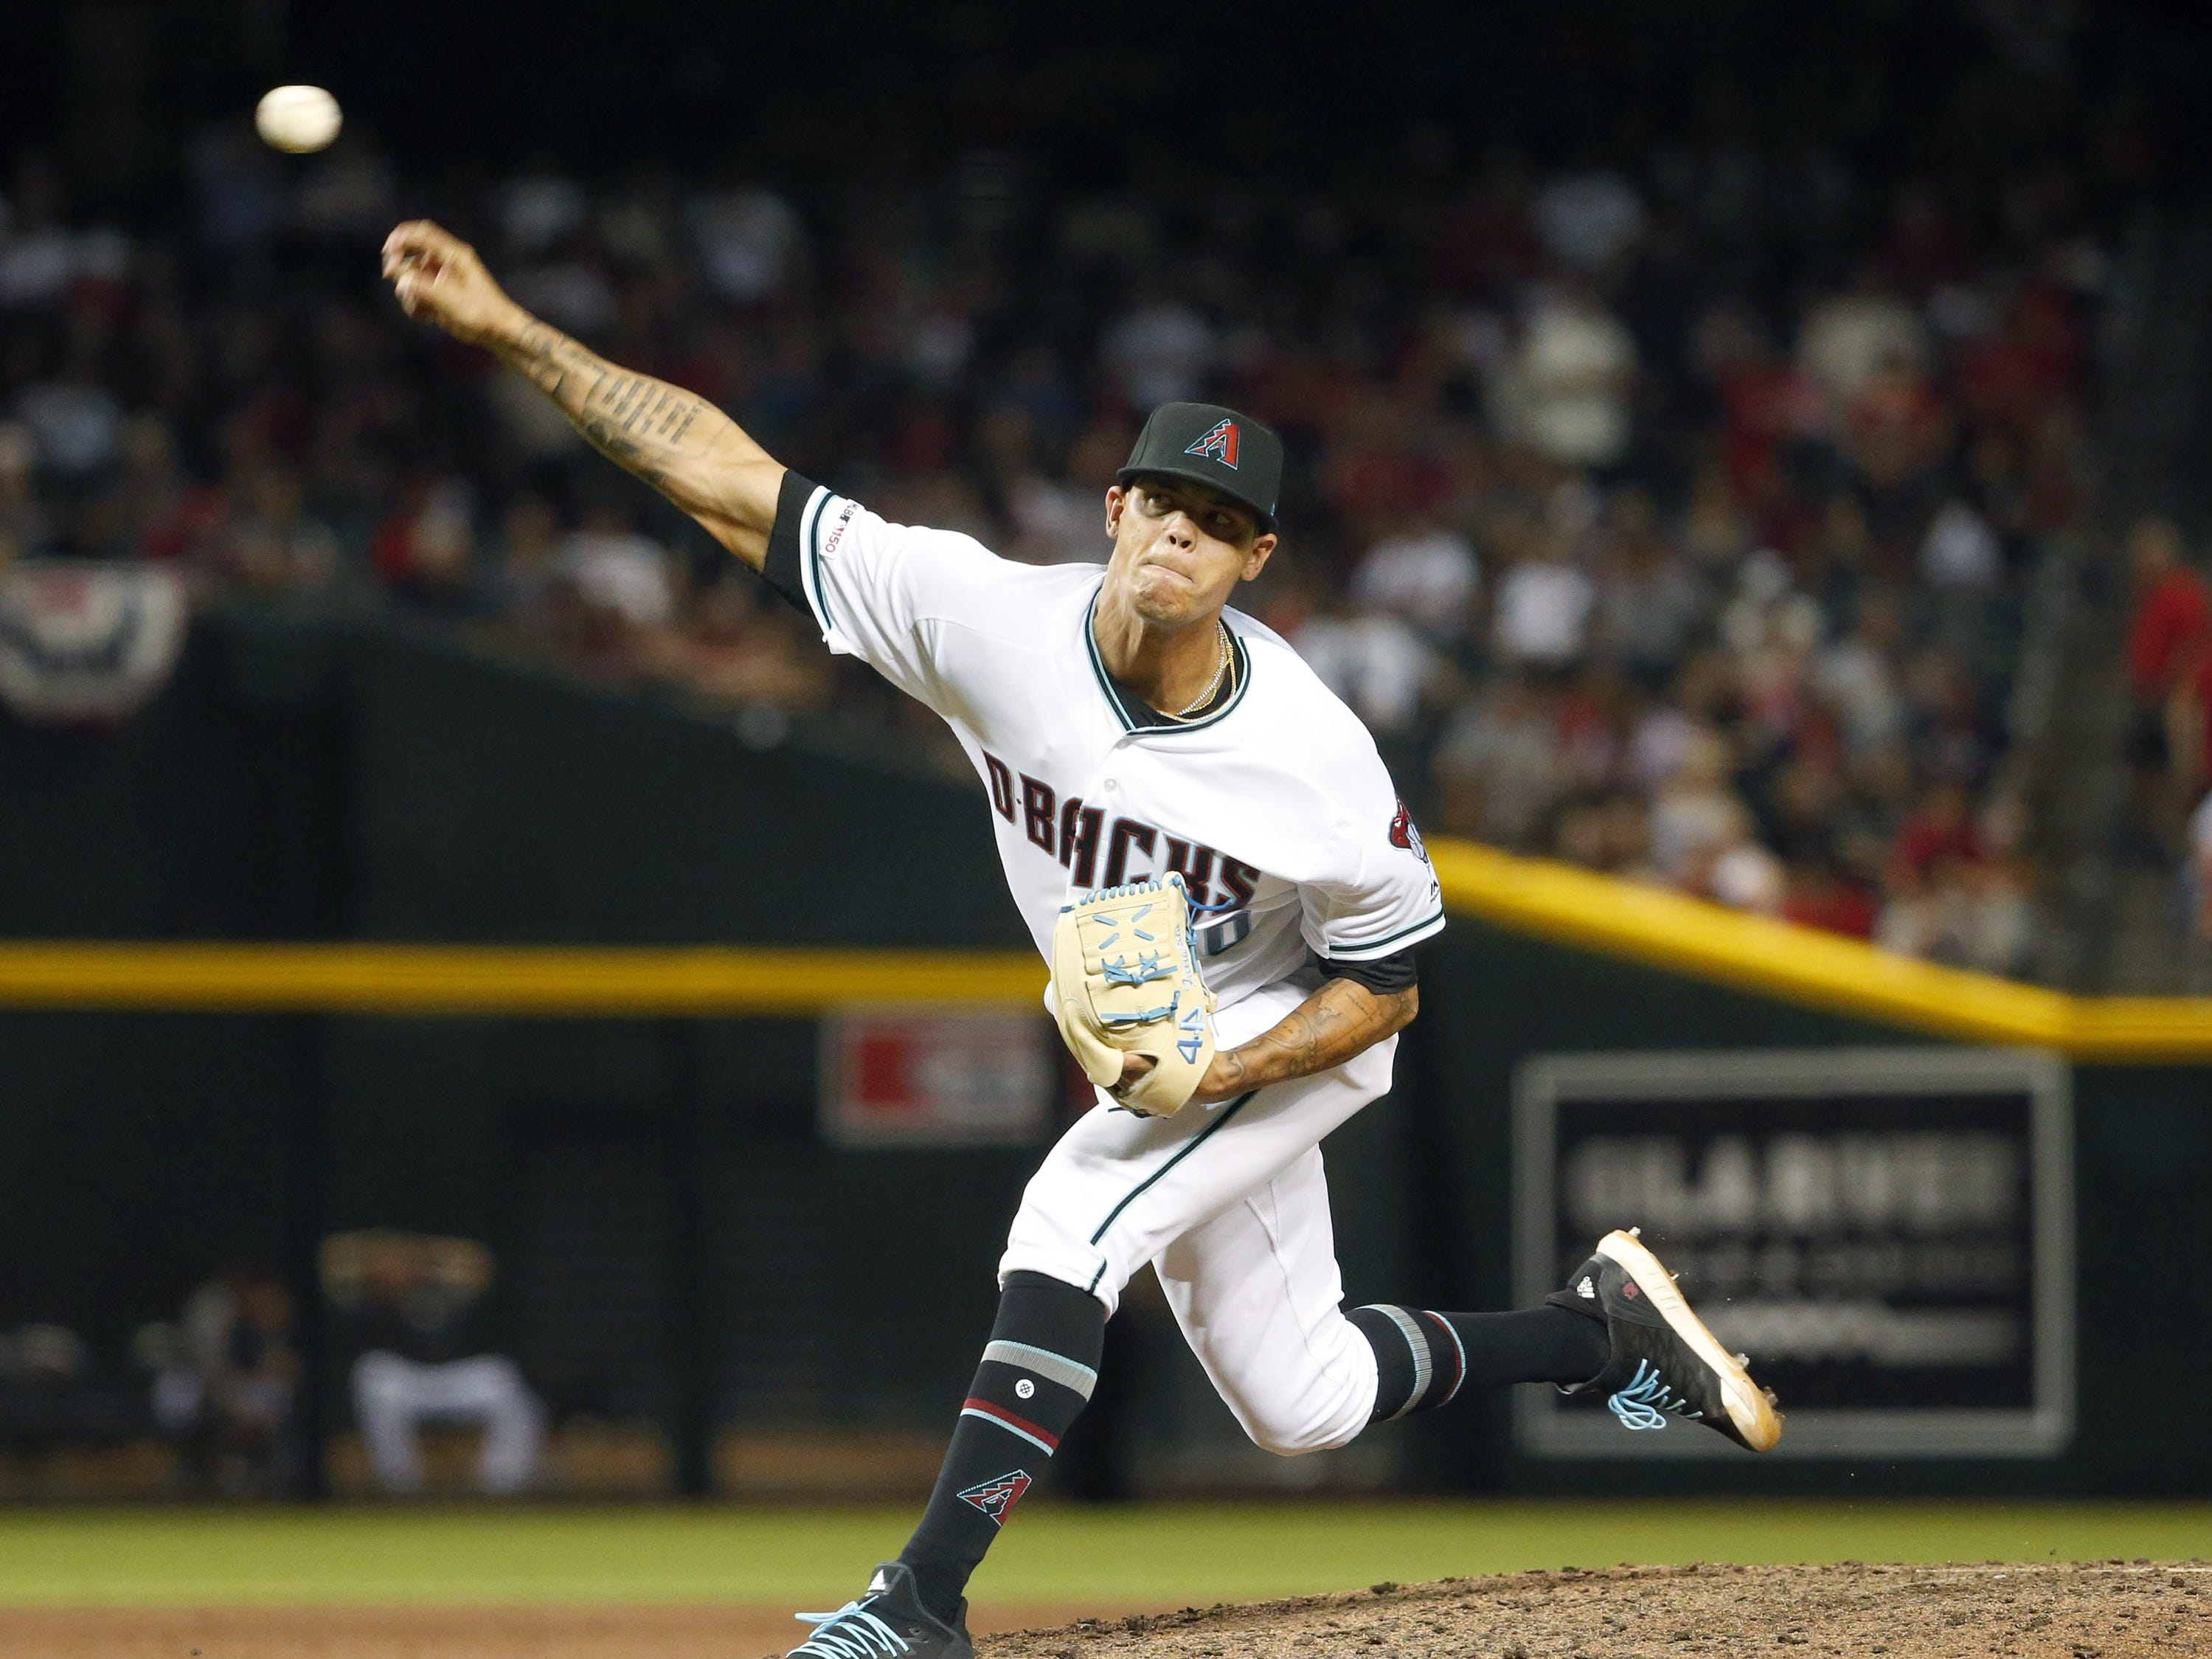 Arizona Diamondbacks relief pitcher Yoan Lopez (50) closes the Opening Day game against Boston Red Sox at Chase Field in Phoenix on April 5.